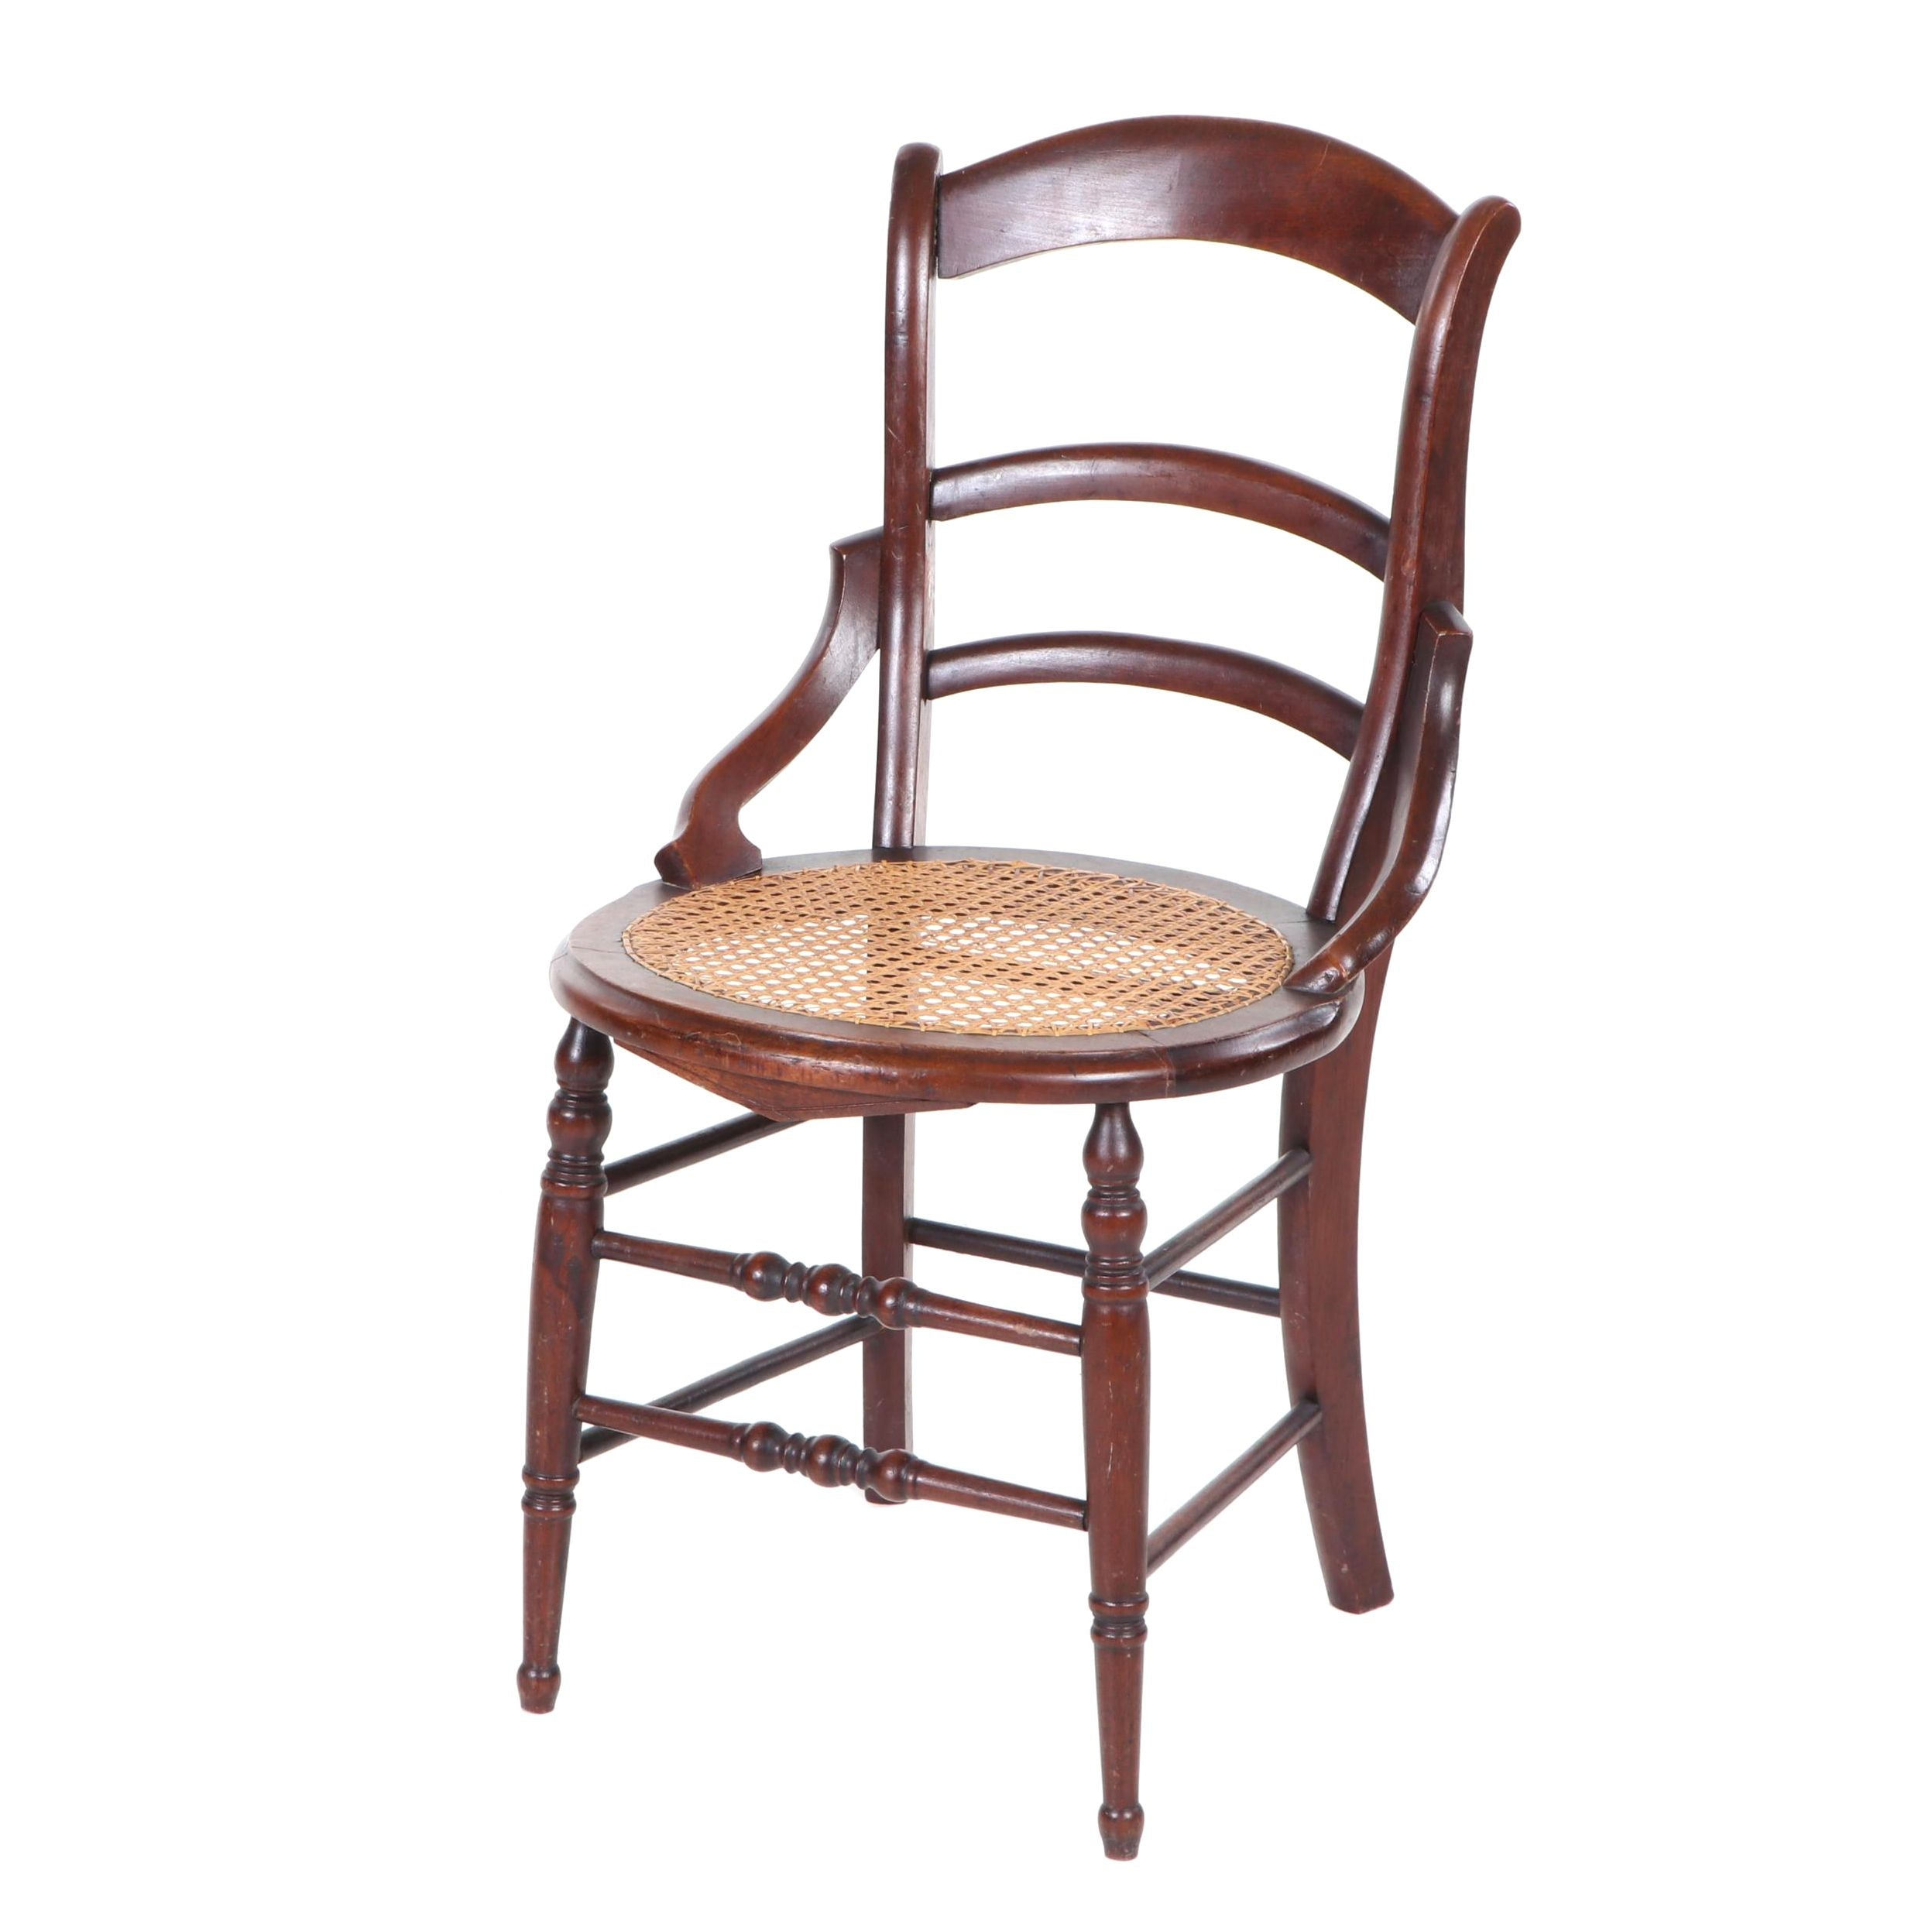 Mahogany Side Chair with Cane Seat, Early 20th Century